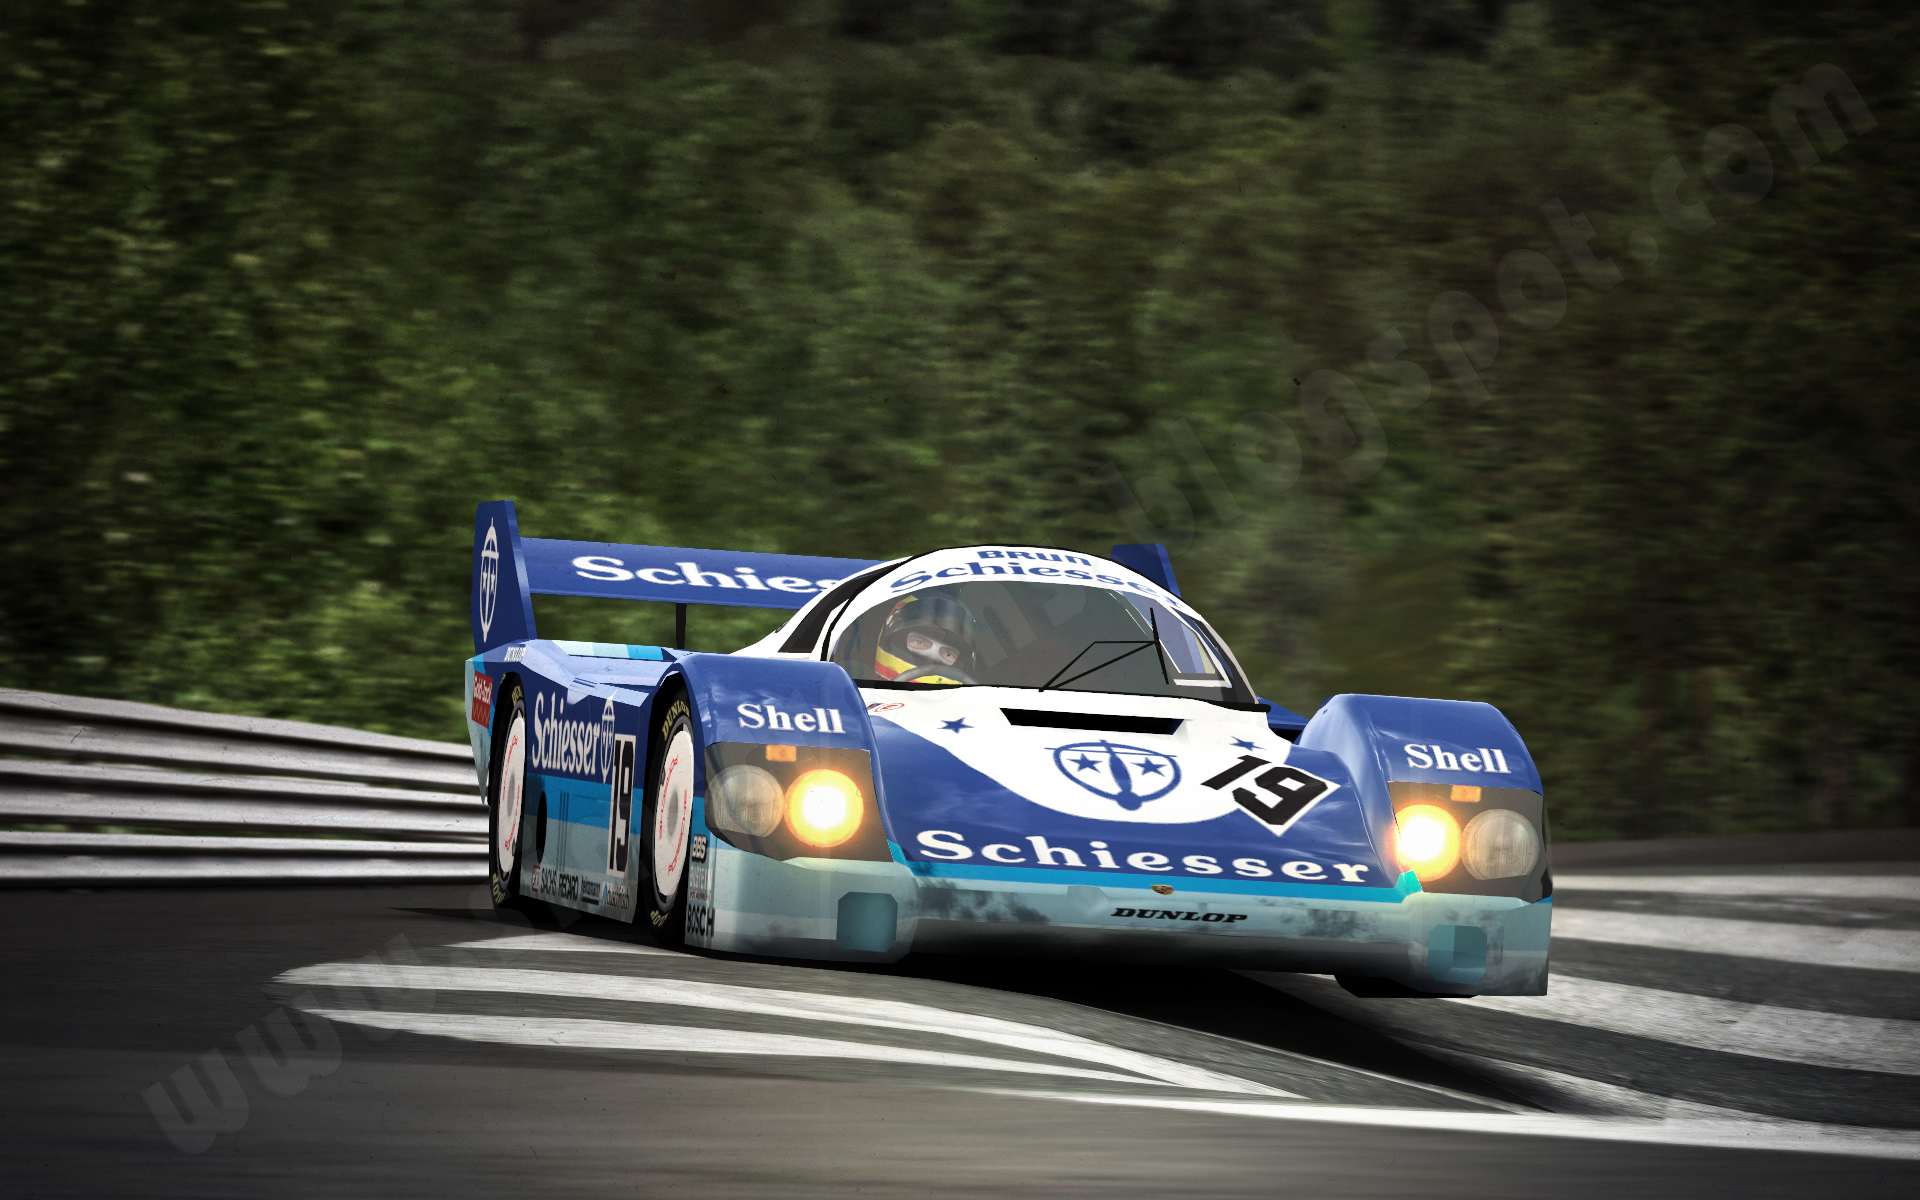 More Than Just Pixels Gtr2 Stefan Bellof Nordschleife